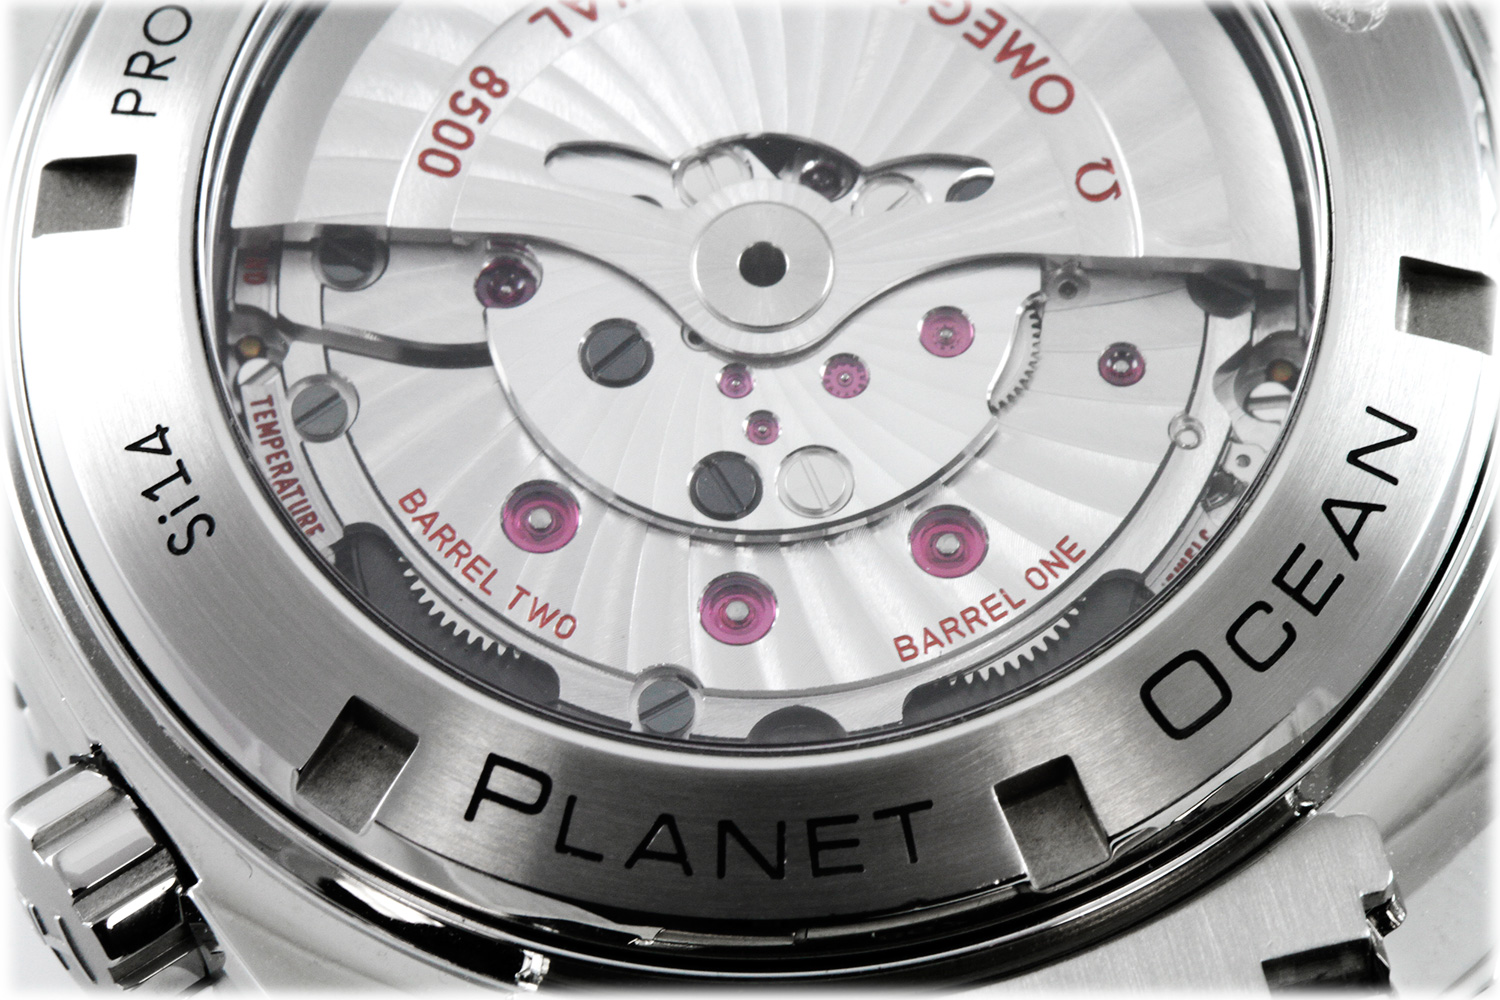 The self-made replica Omega 8500 has coaxial escapement systems.